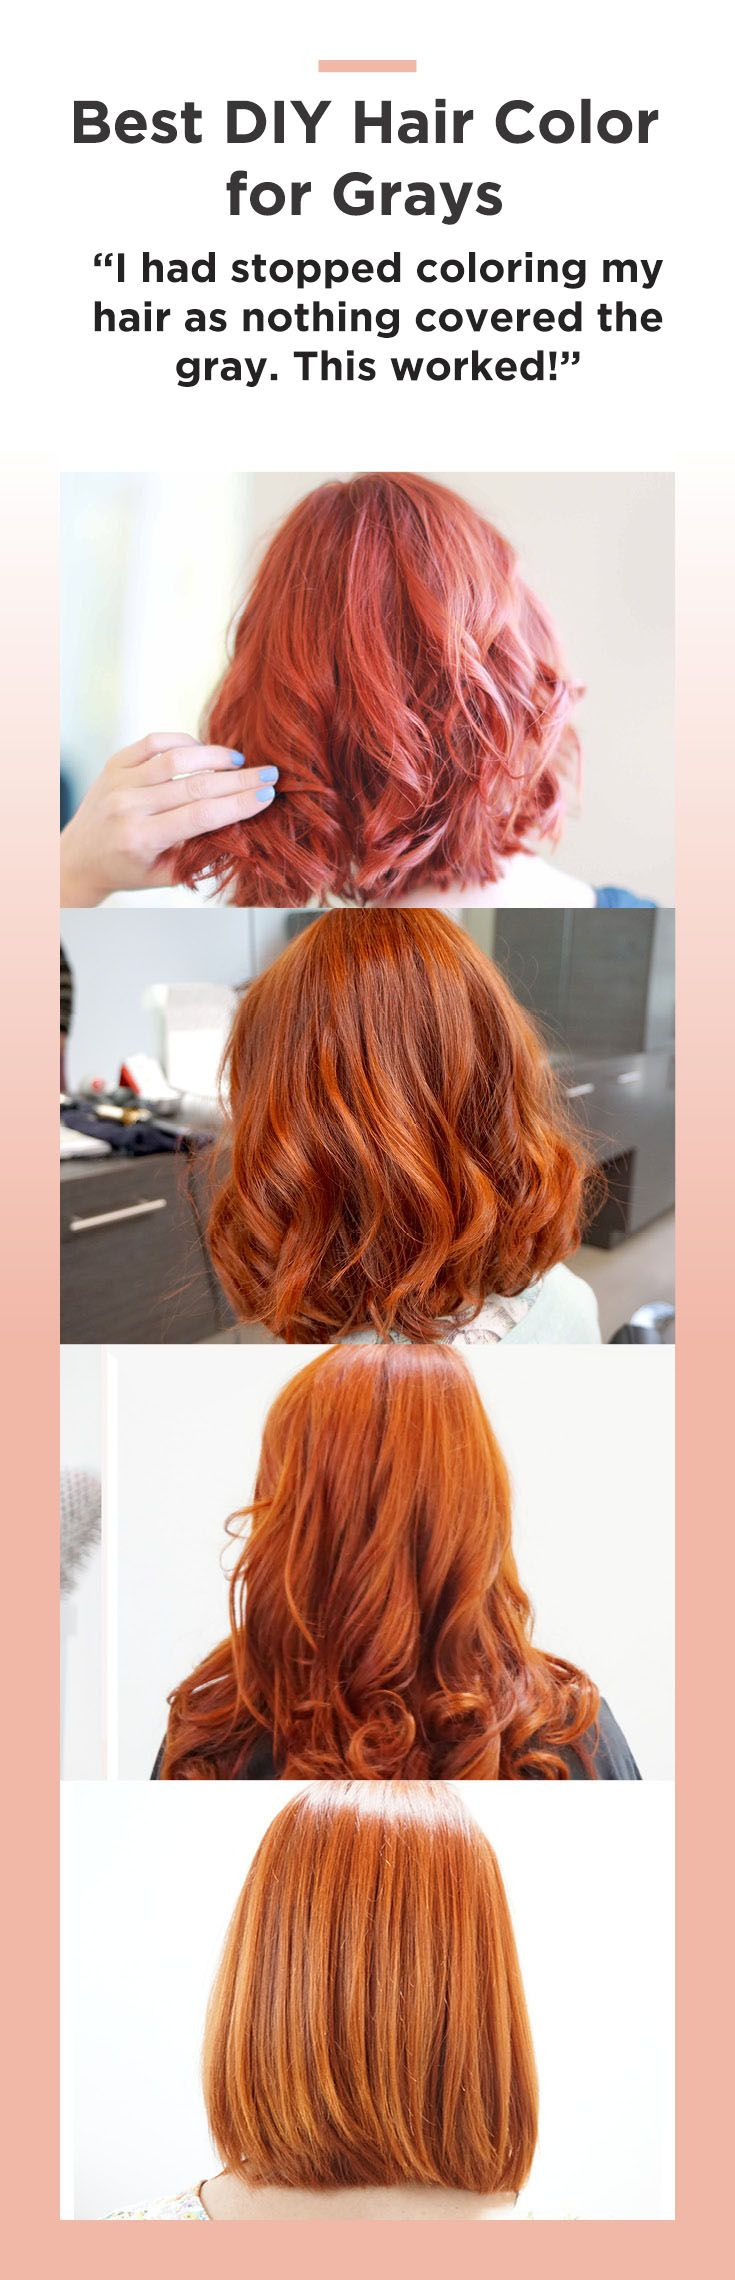 """Ditch the generic drugstore box and try this new DIY hair color: """"It was the exact hair color I was looking for but could not find. That in between color that you just can't get from store bought colors..."""